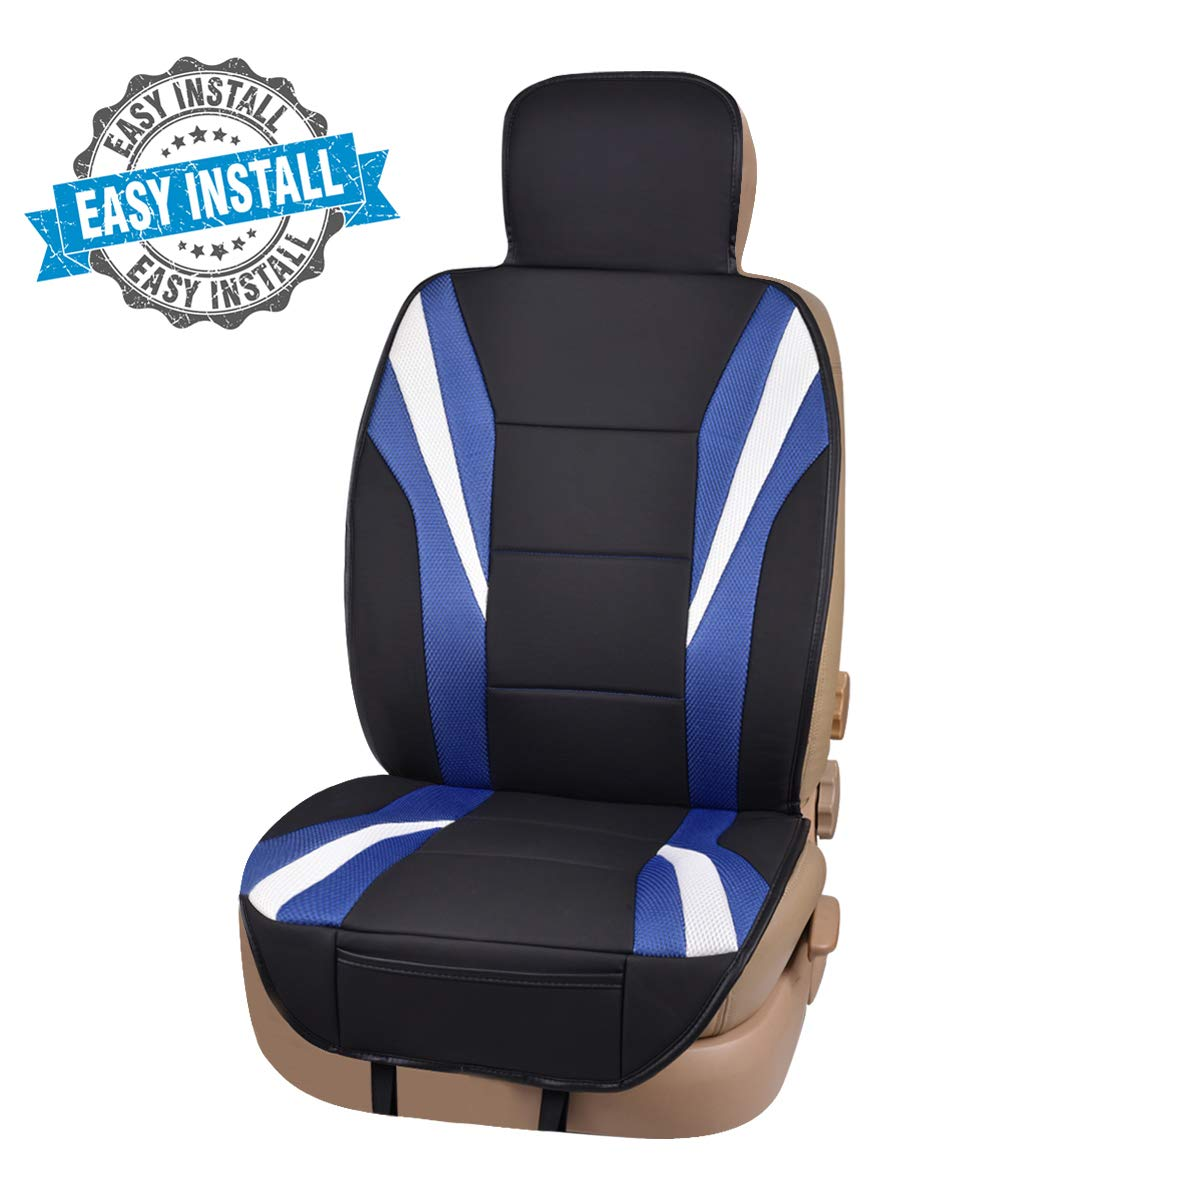 CAR PASS Delux Sideless Universal Fit Cool Driver Car Seat Cover, Seat Cushion,for 1 Peice with Carriage Bag Included, for Suvs,Trucks,Sedans,Cars,Vehicles,Vans(Black and Blue)